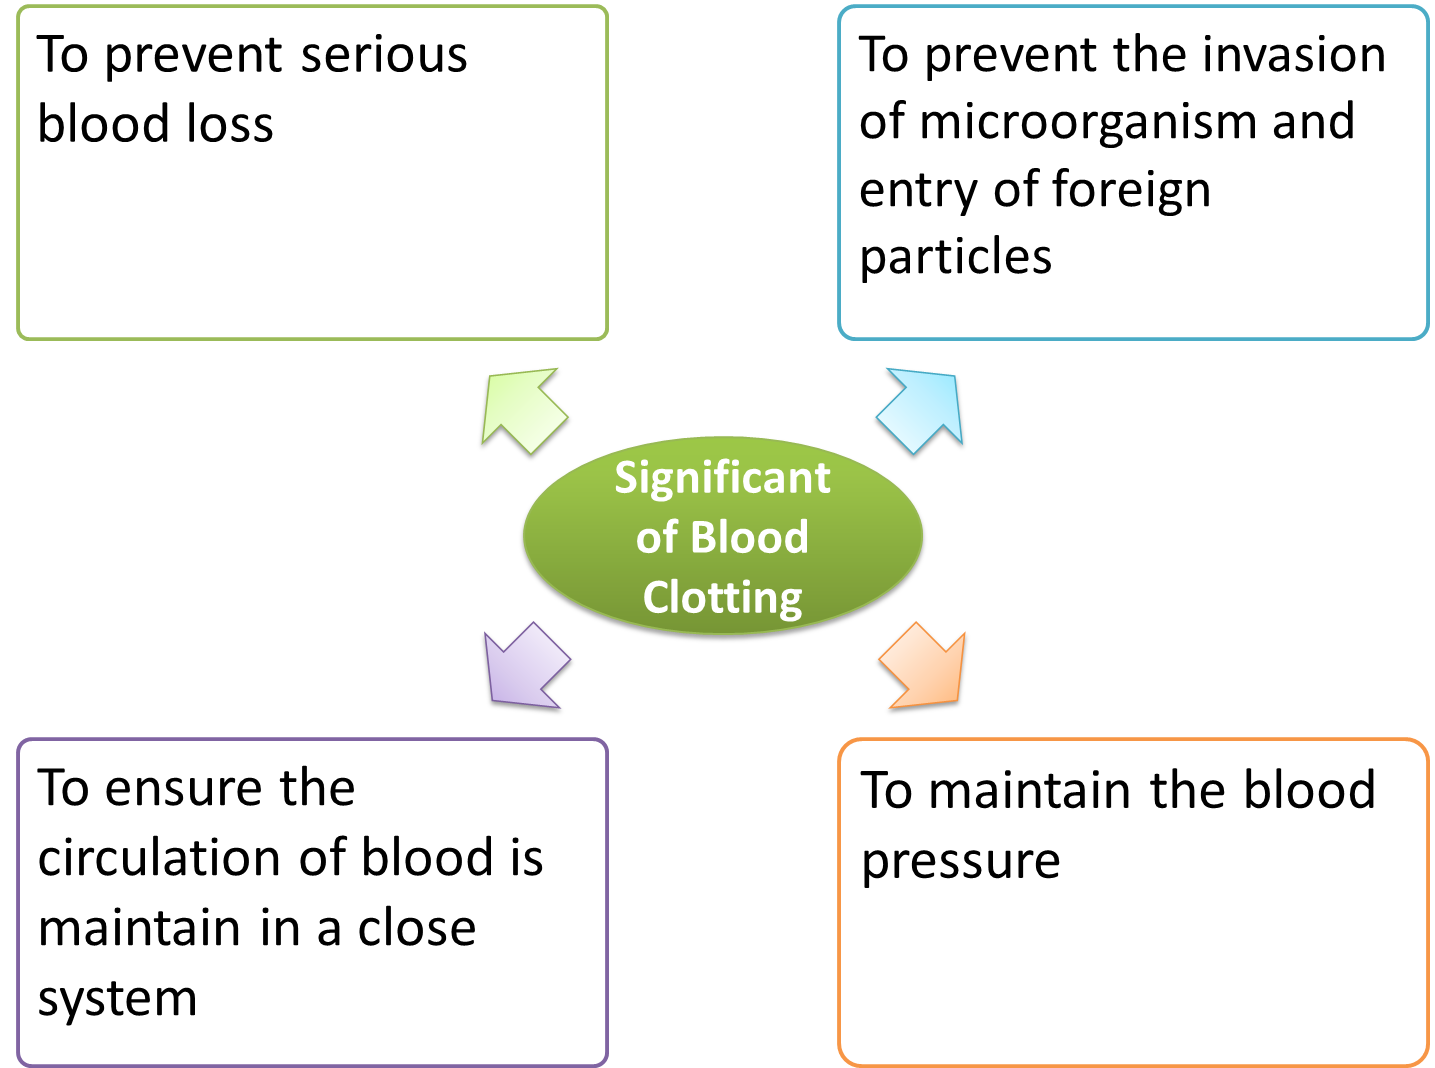 blood clotting 2 essay Irreducible complexity  an essay in support of creationism published in 1994 referred to bacterial flagella as showing  (2) the blood-clotting cascade.